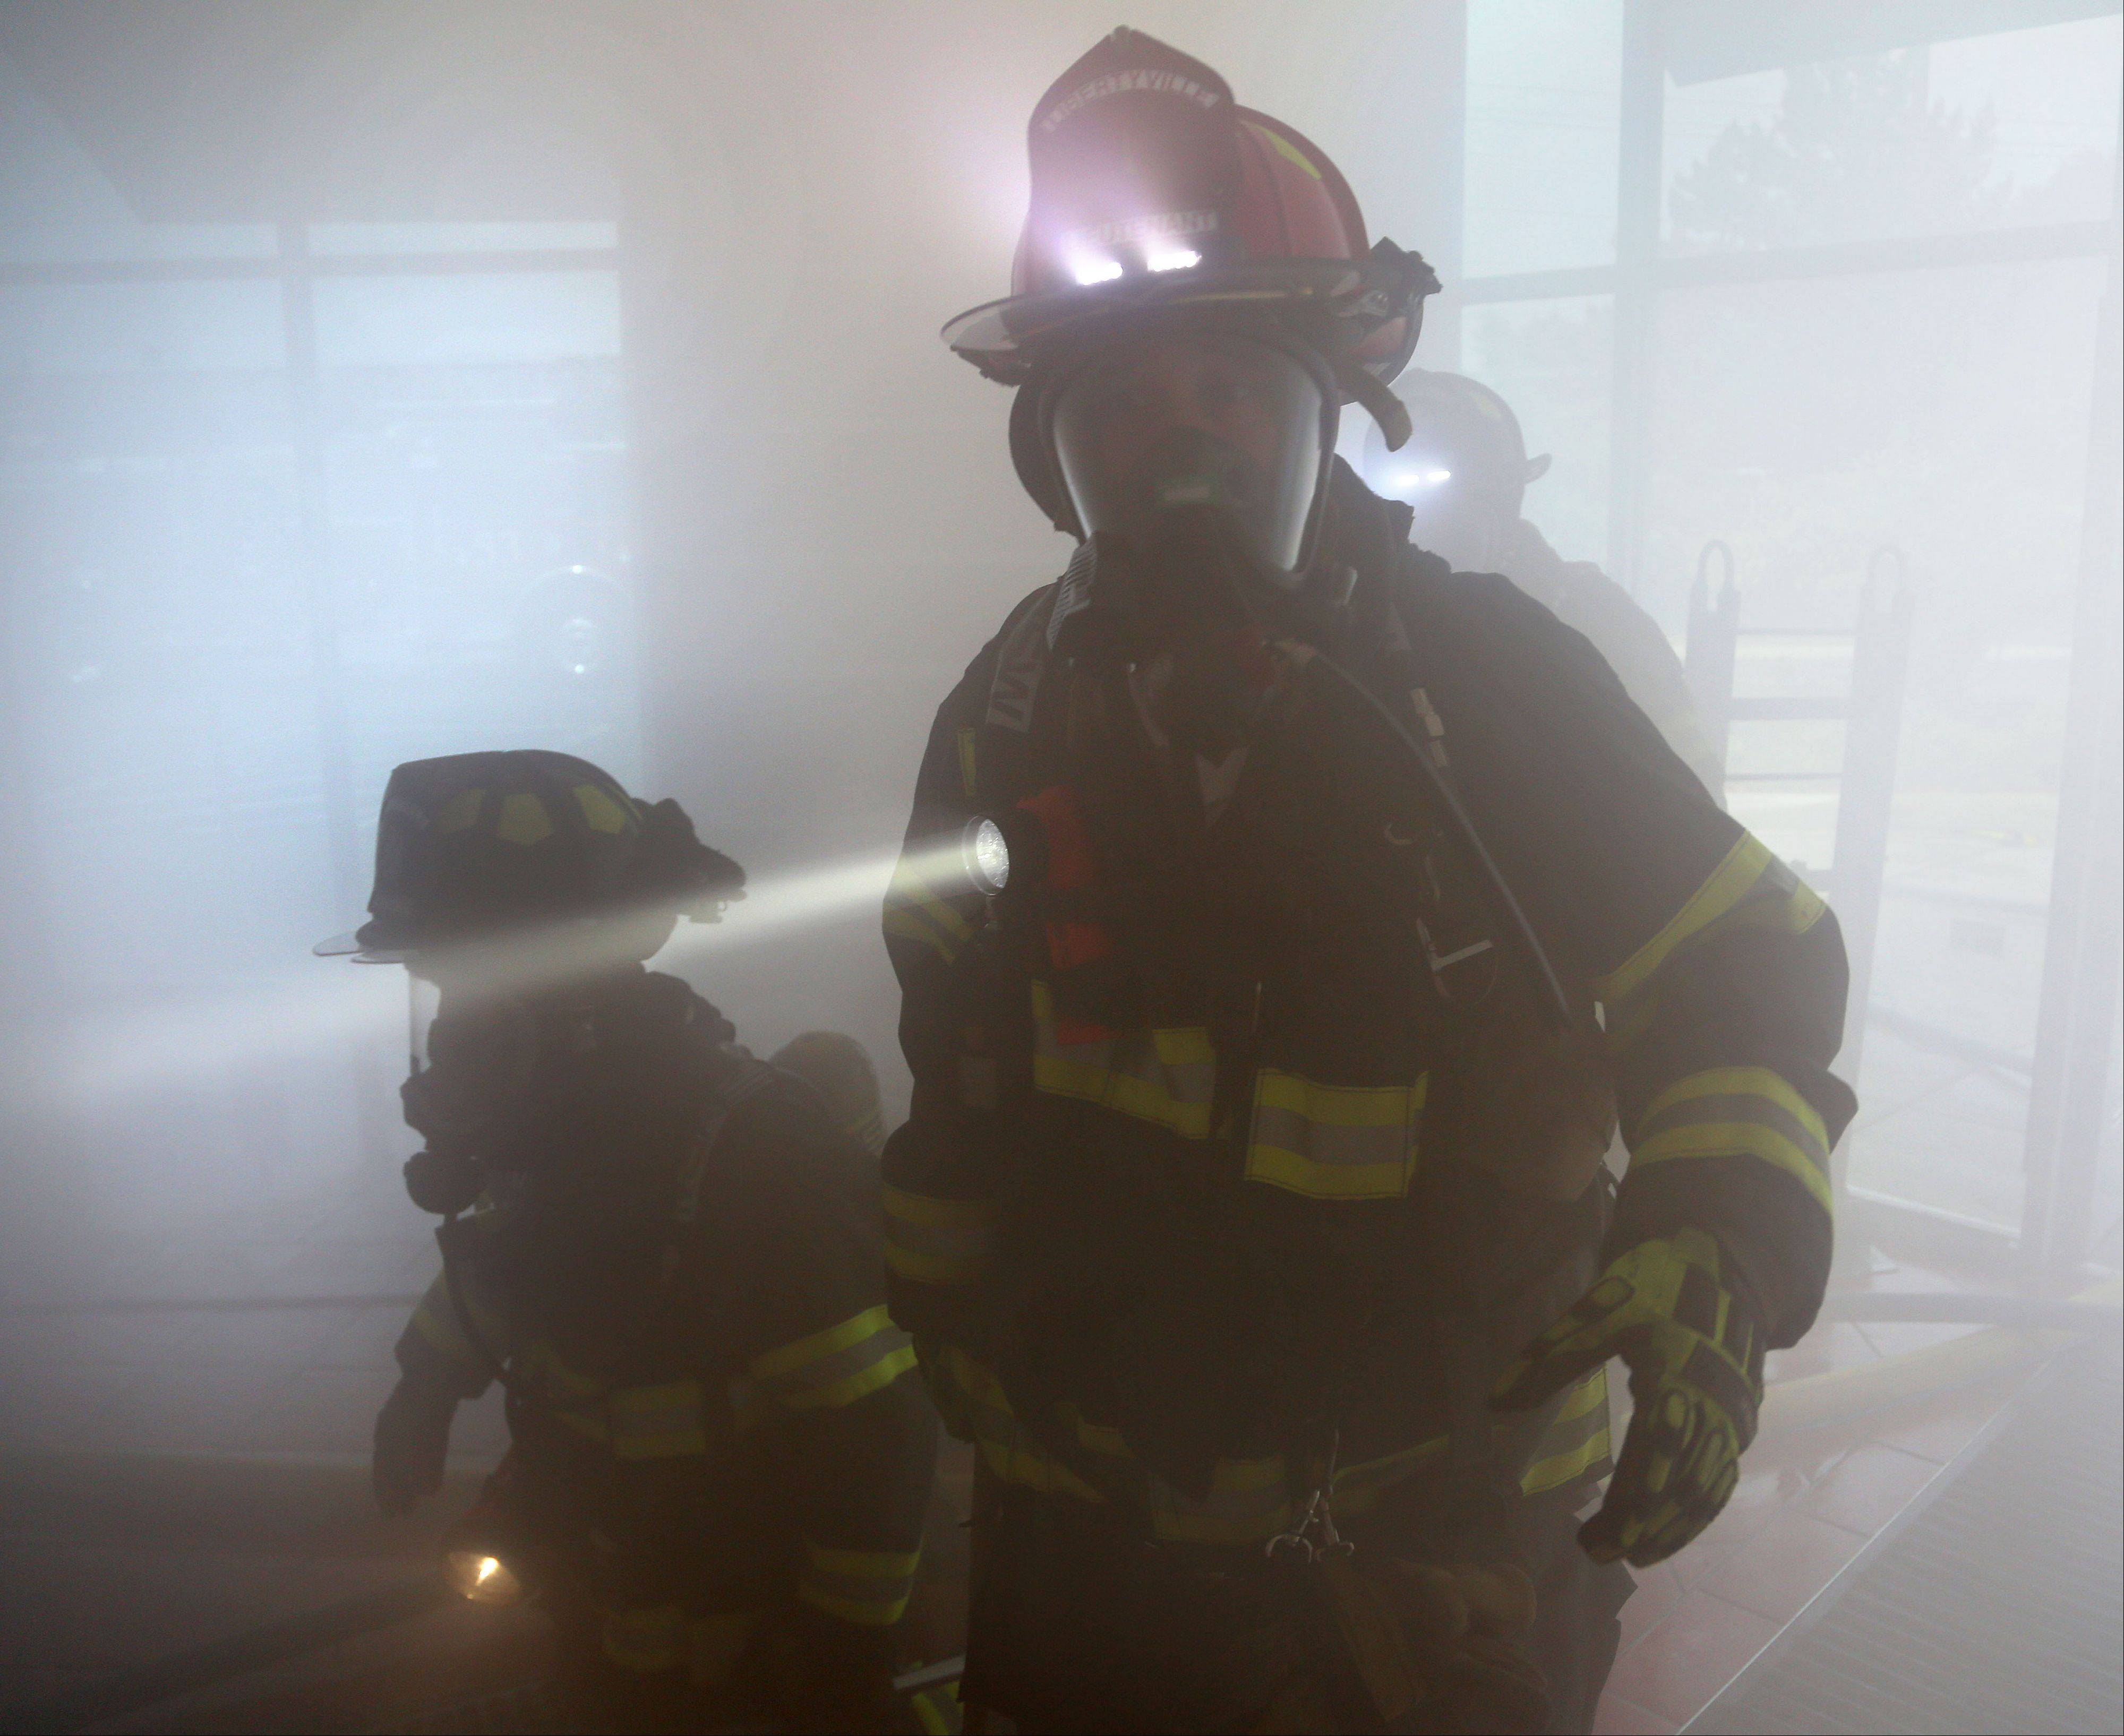 Countryside firefighters maneuver through a smoke filled building during search and rescue training Friday morning at the former Pier 1 Imports building in Vernon Hills.